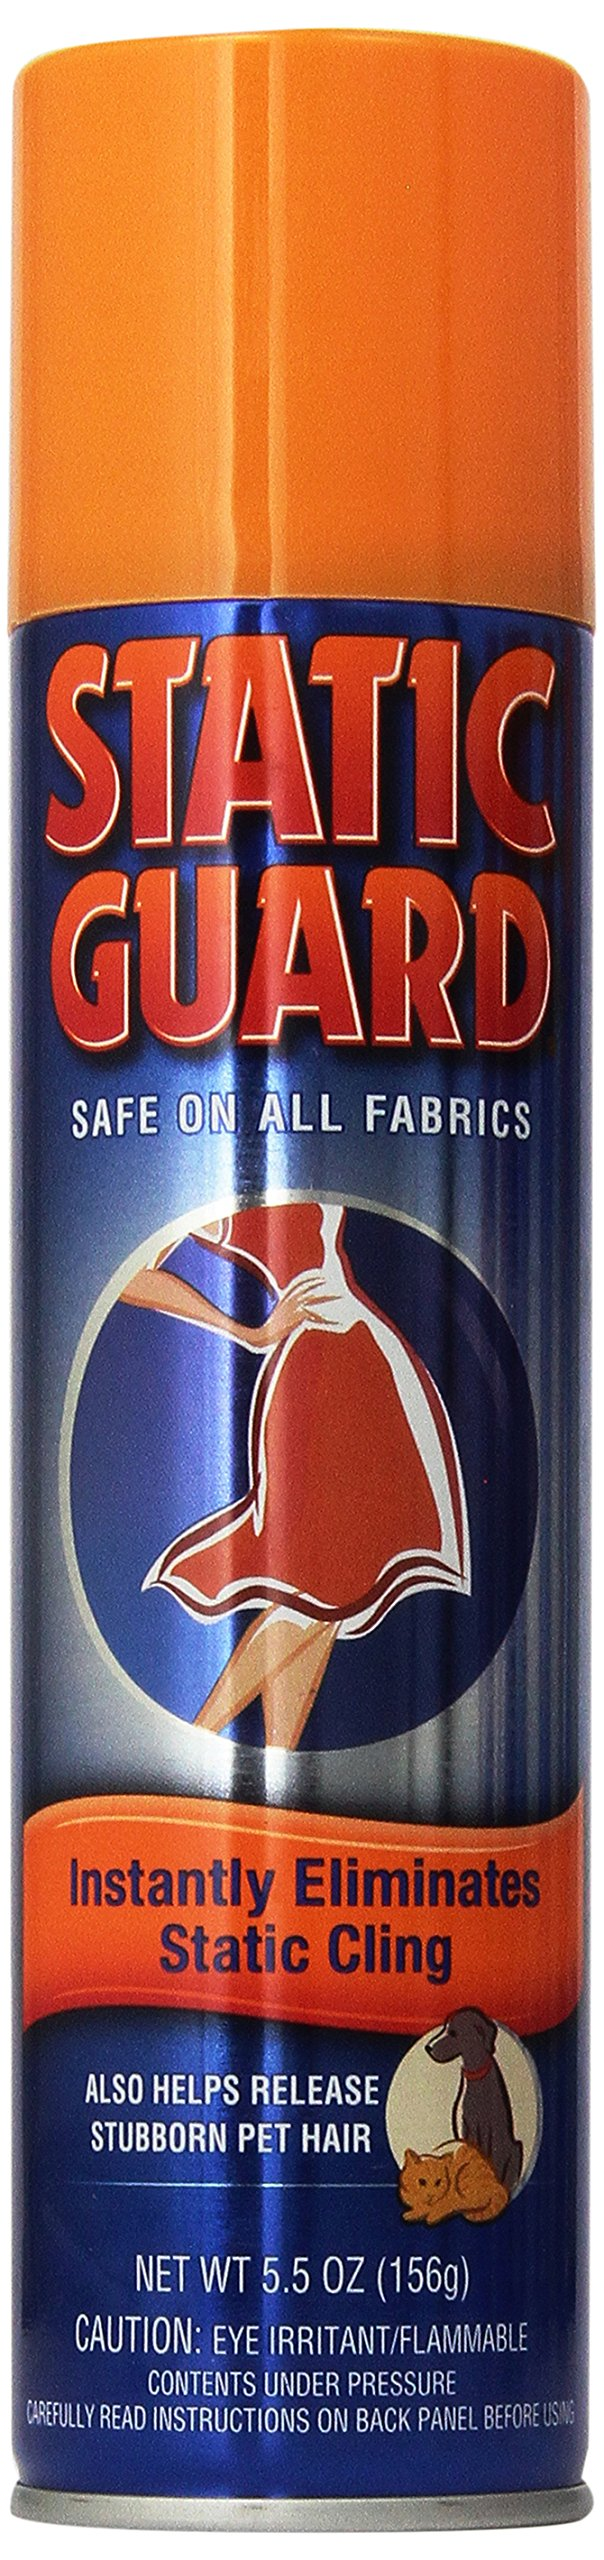 Static Guard Static Cling Spray, 5.5 oz (Pack of 6)